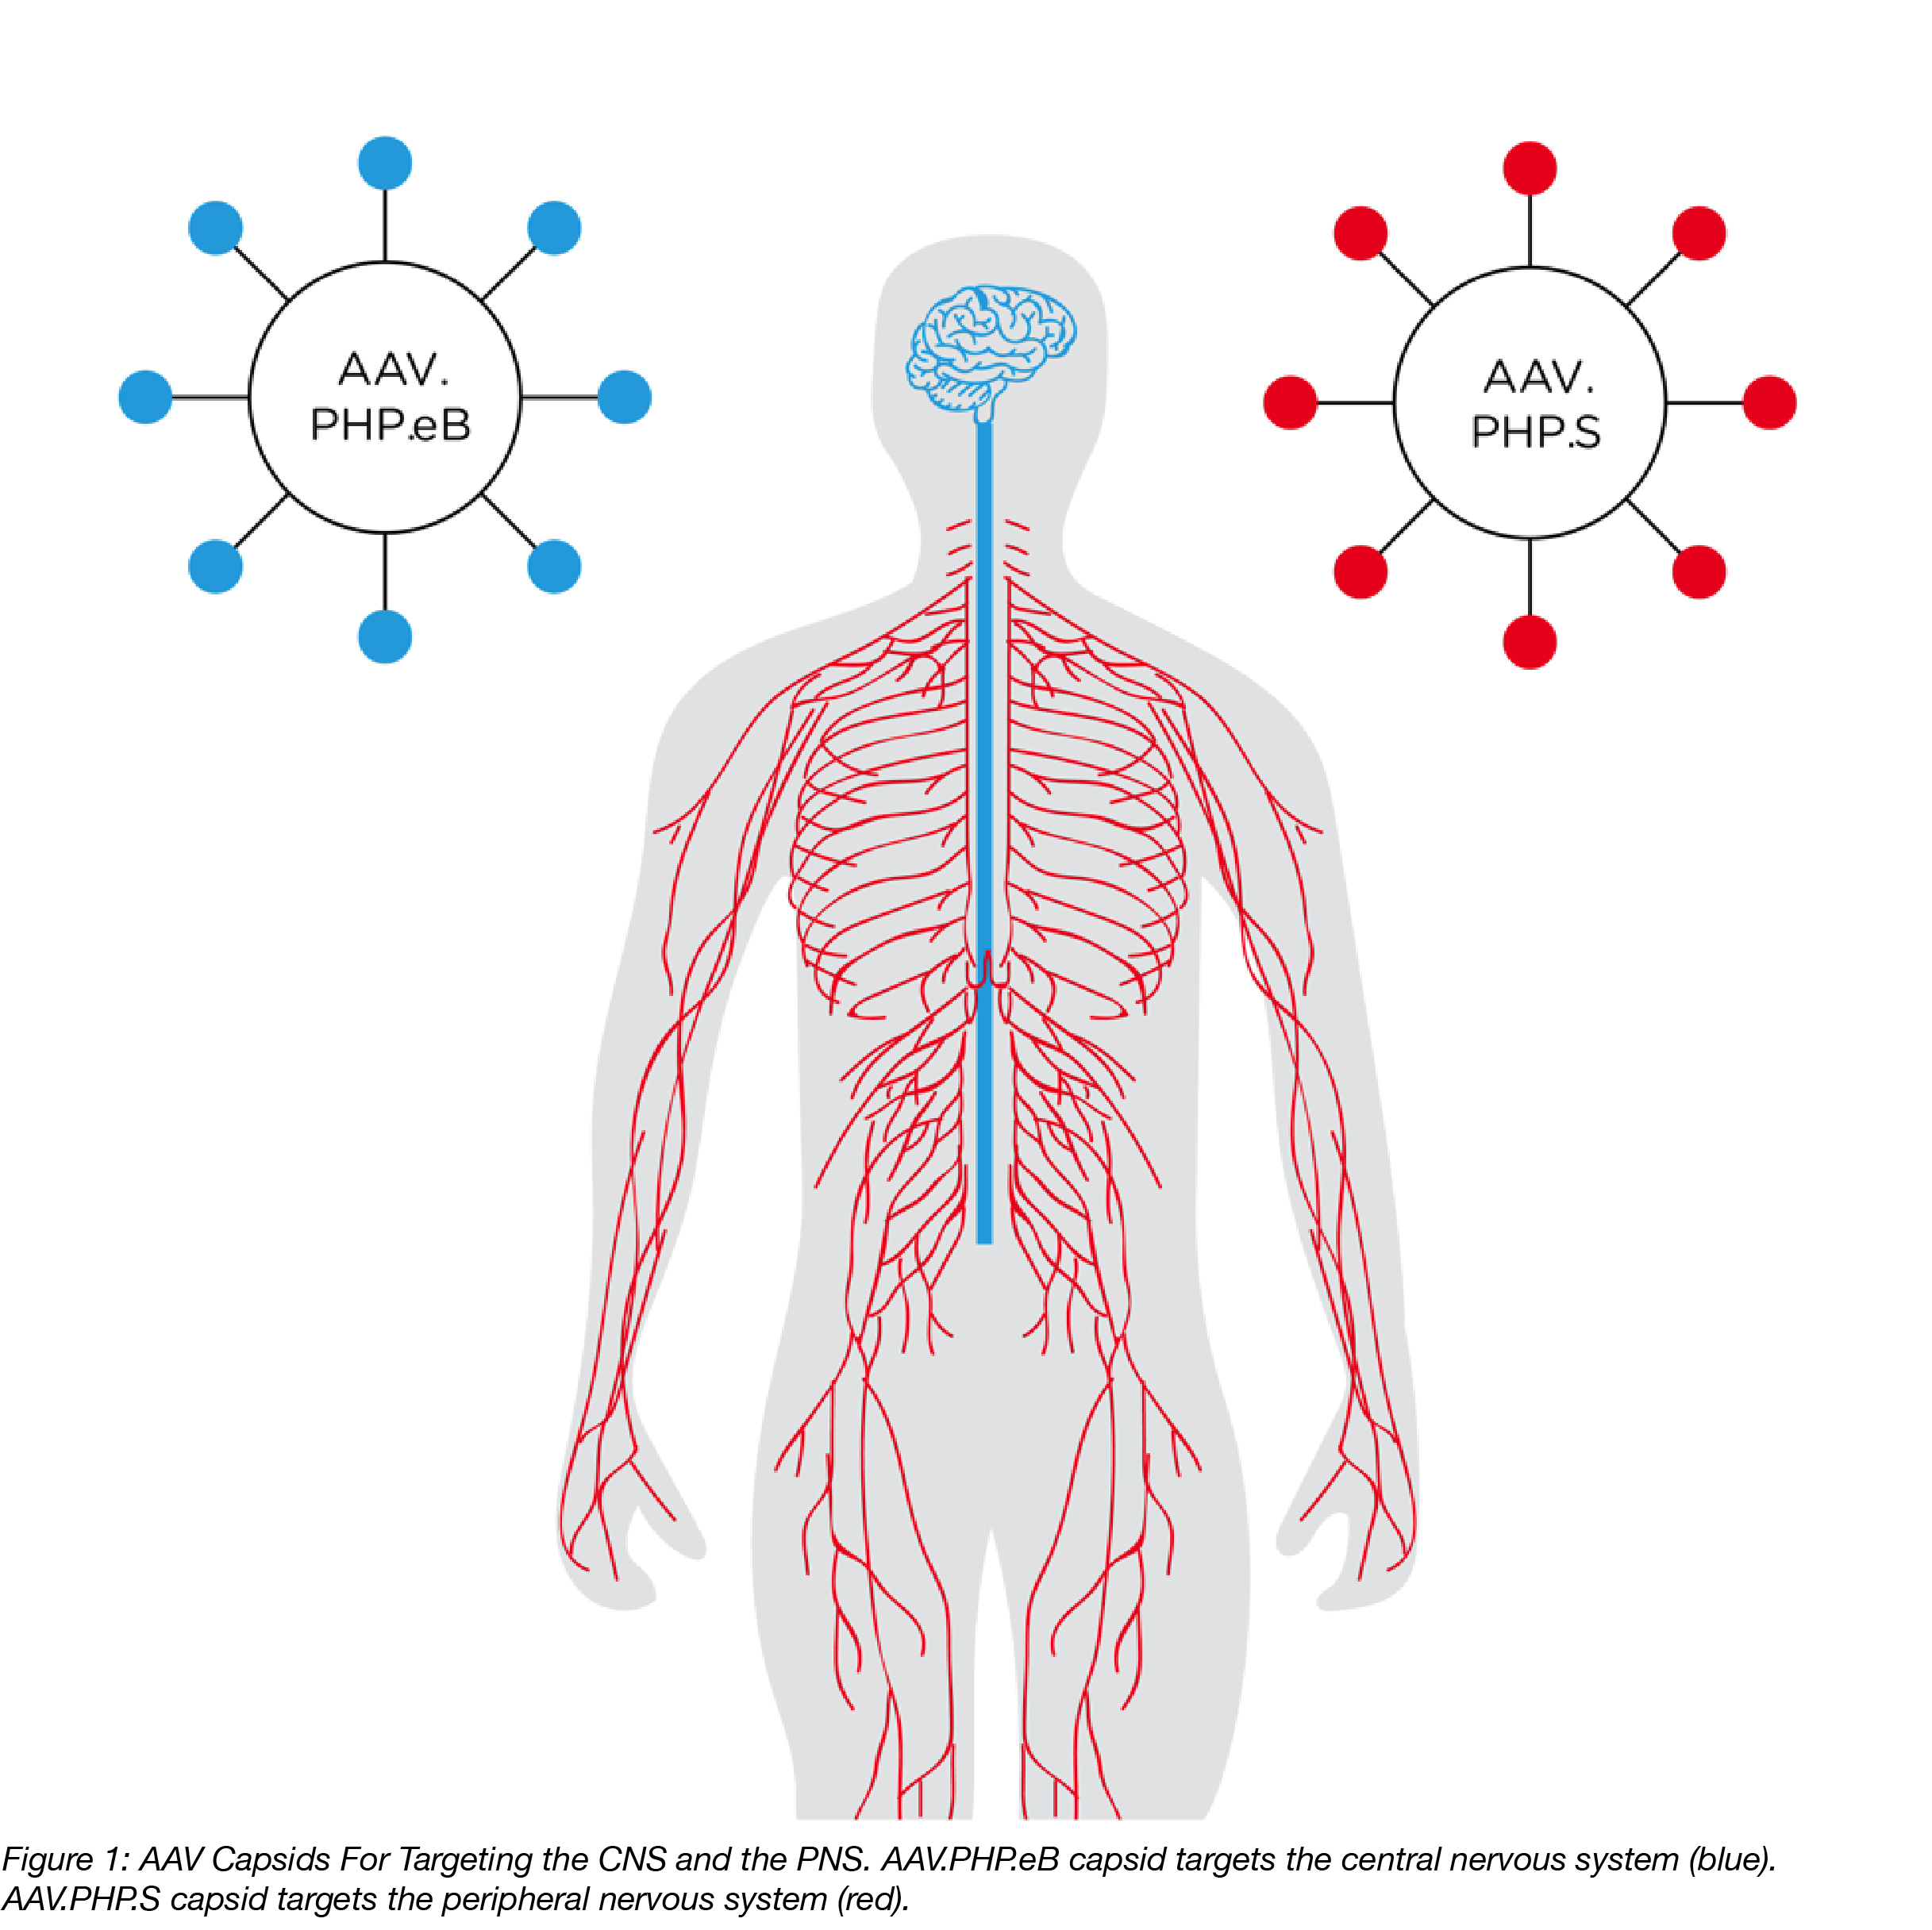 AAV Capsids targeting the CNS and PNS